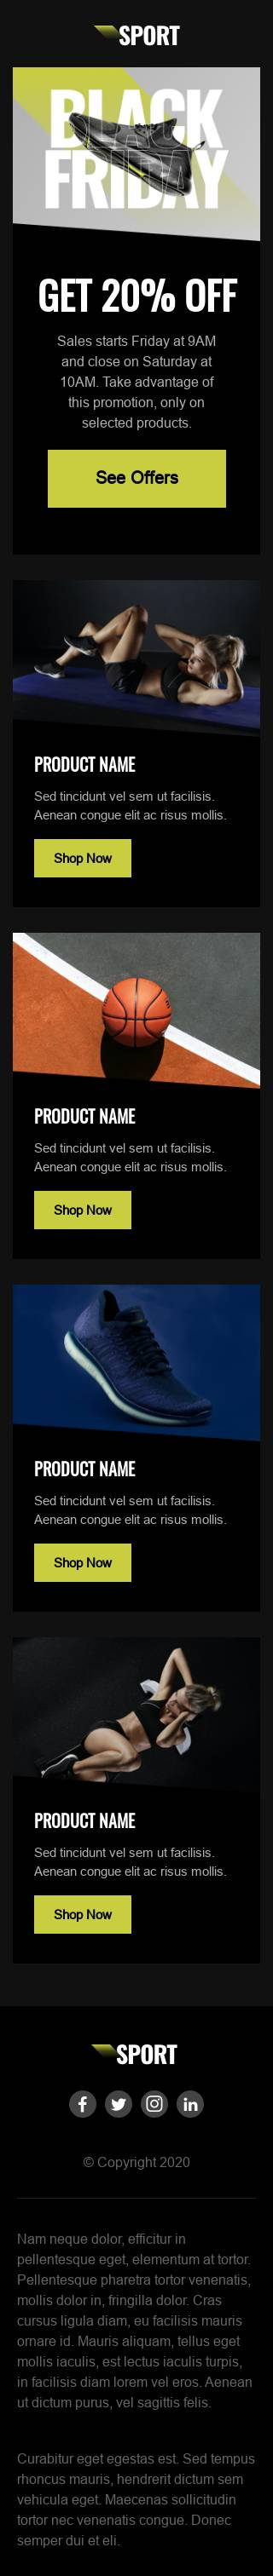 Sports E-Commerce Black Friday email template